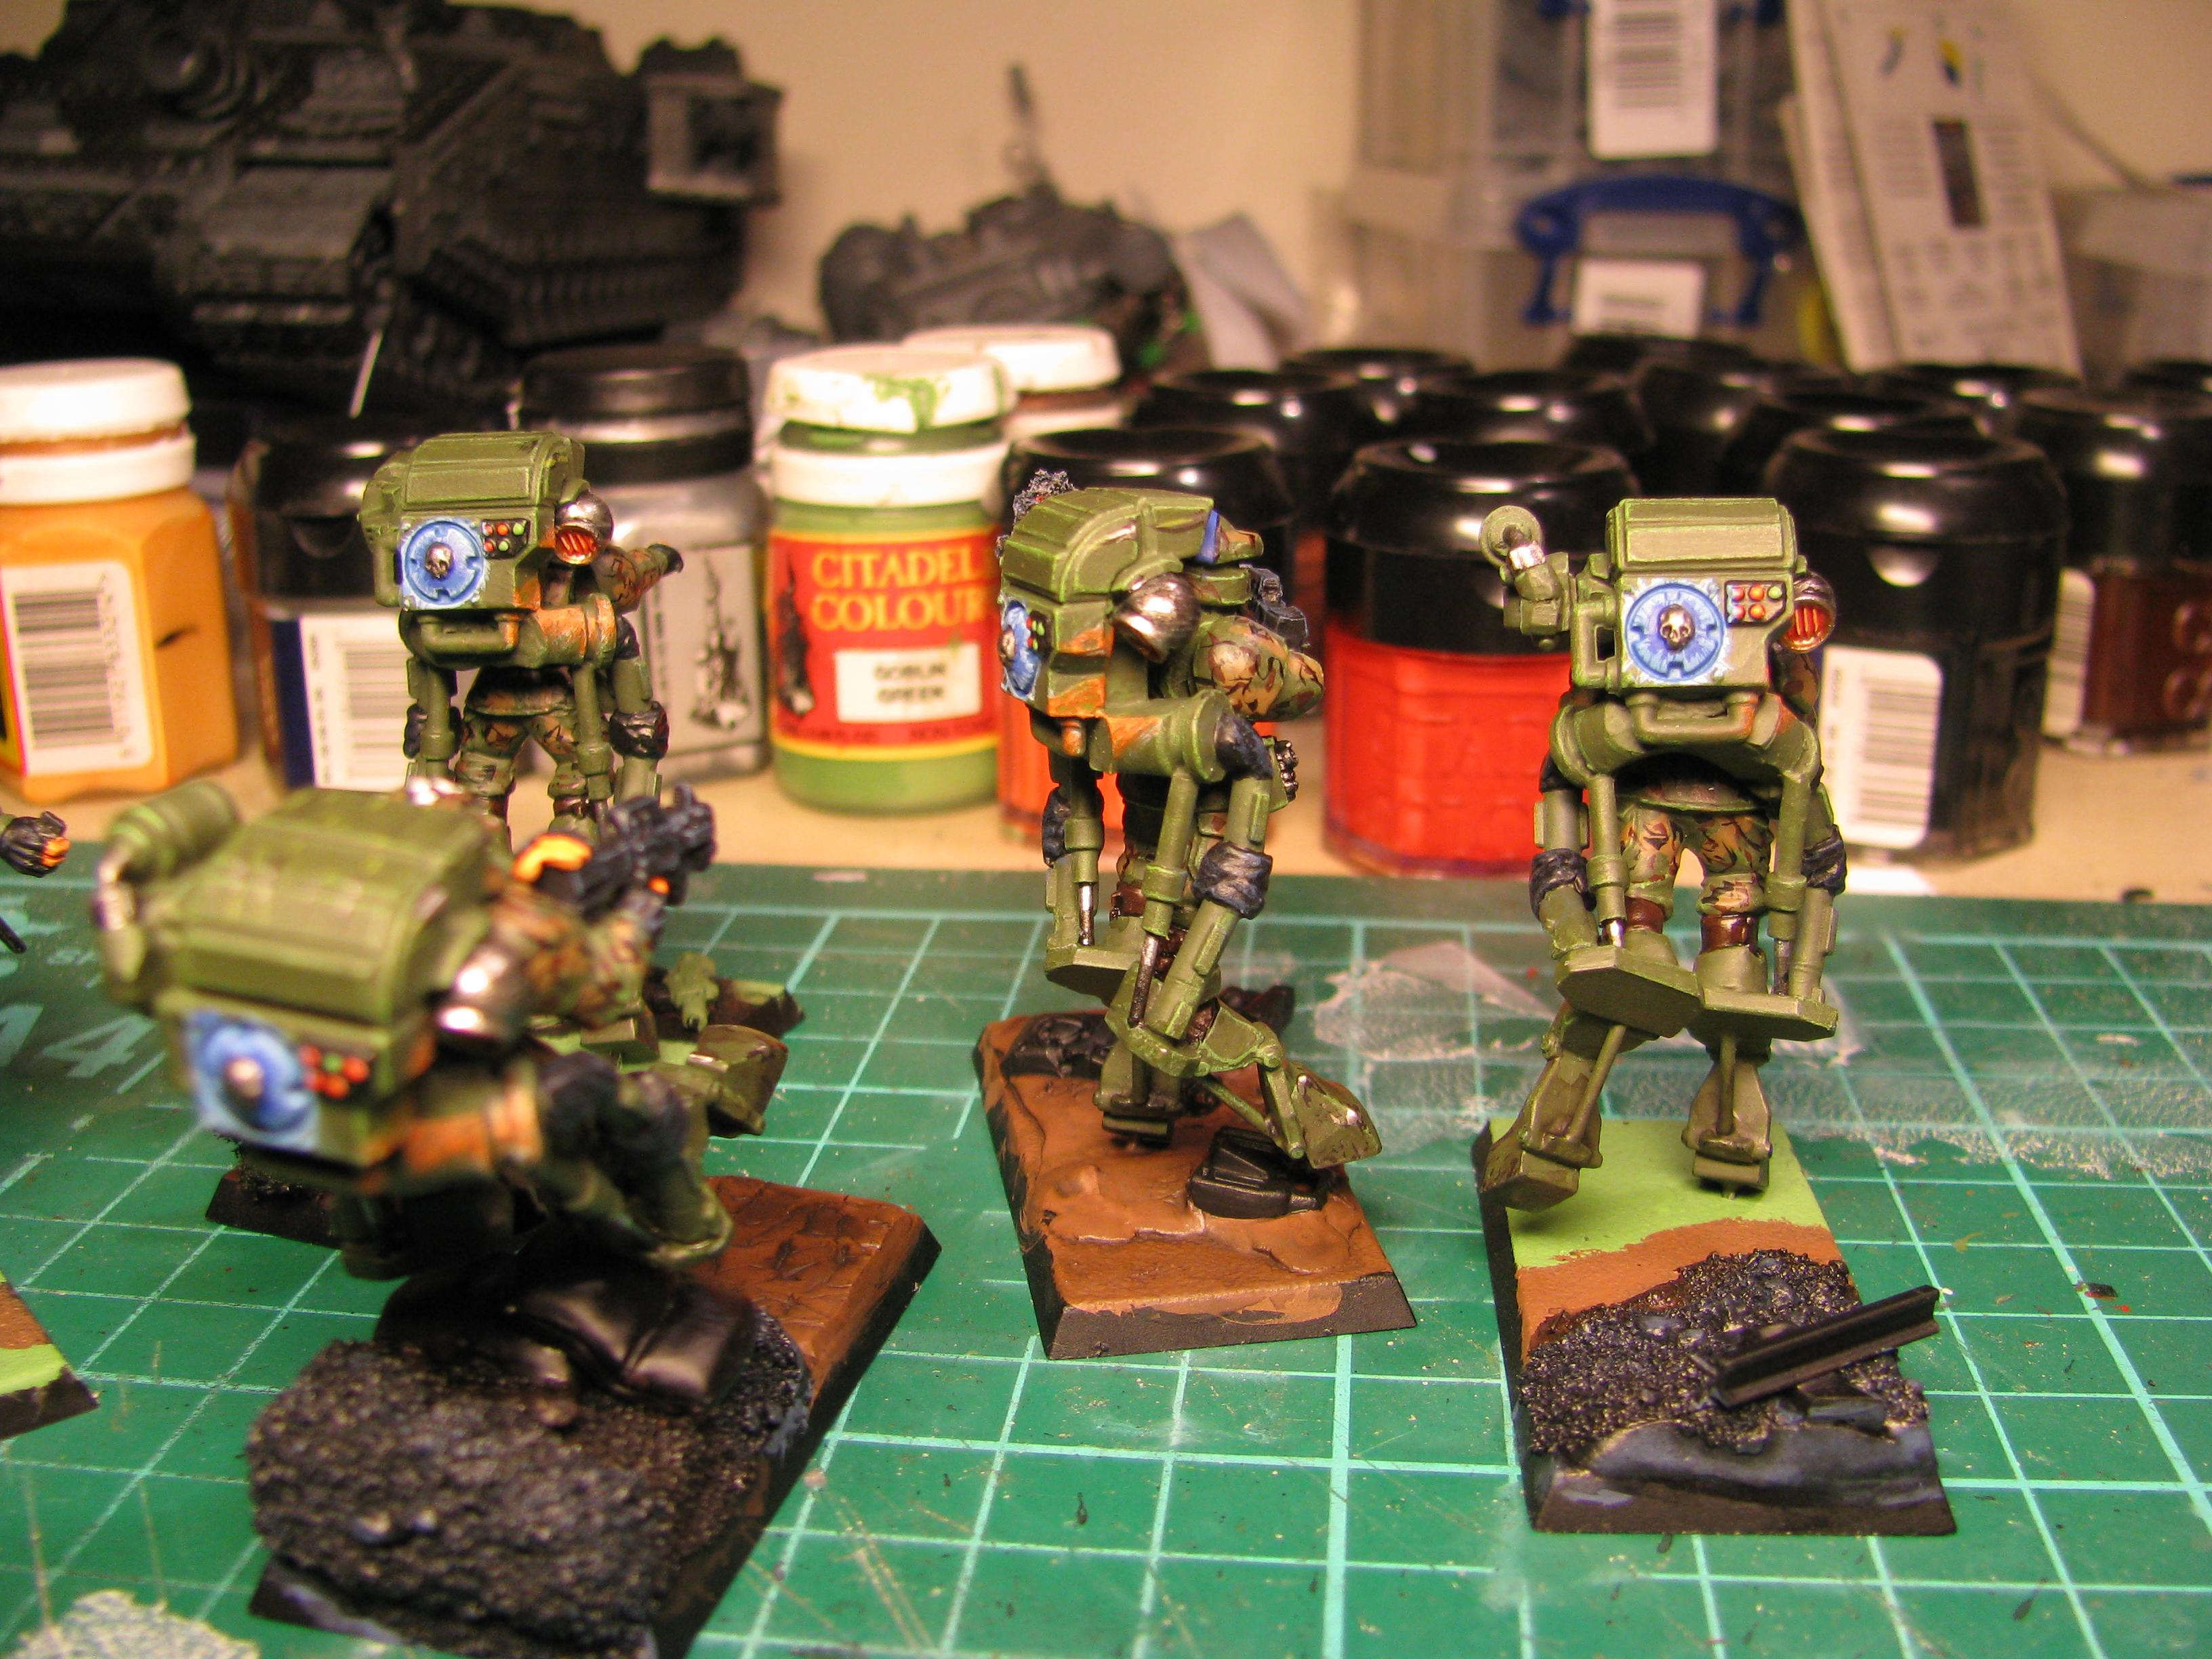 Conversion, Exo-suits, Guard, Rough Riders, Warhammer 40,000